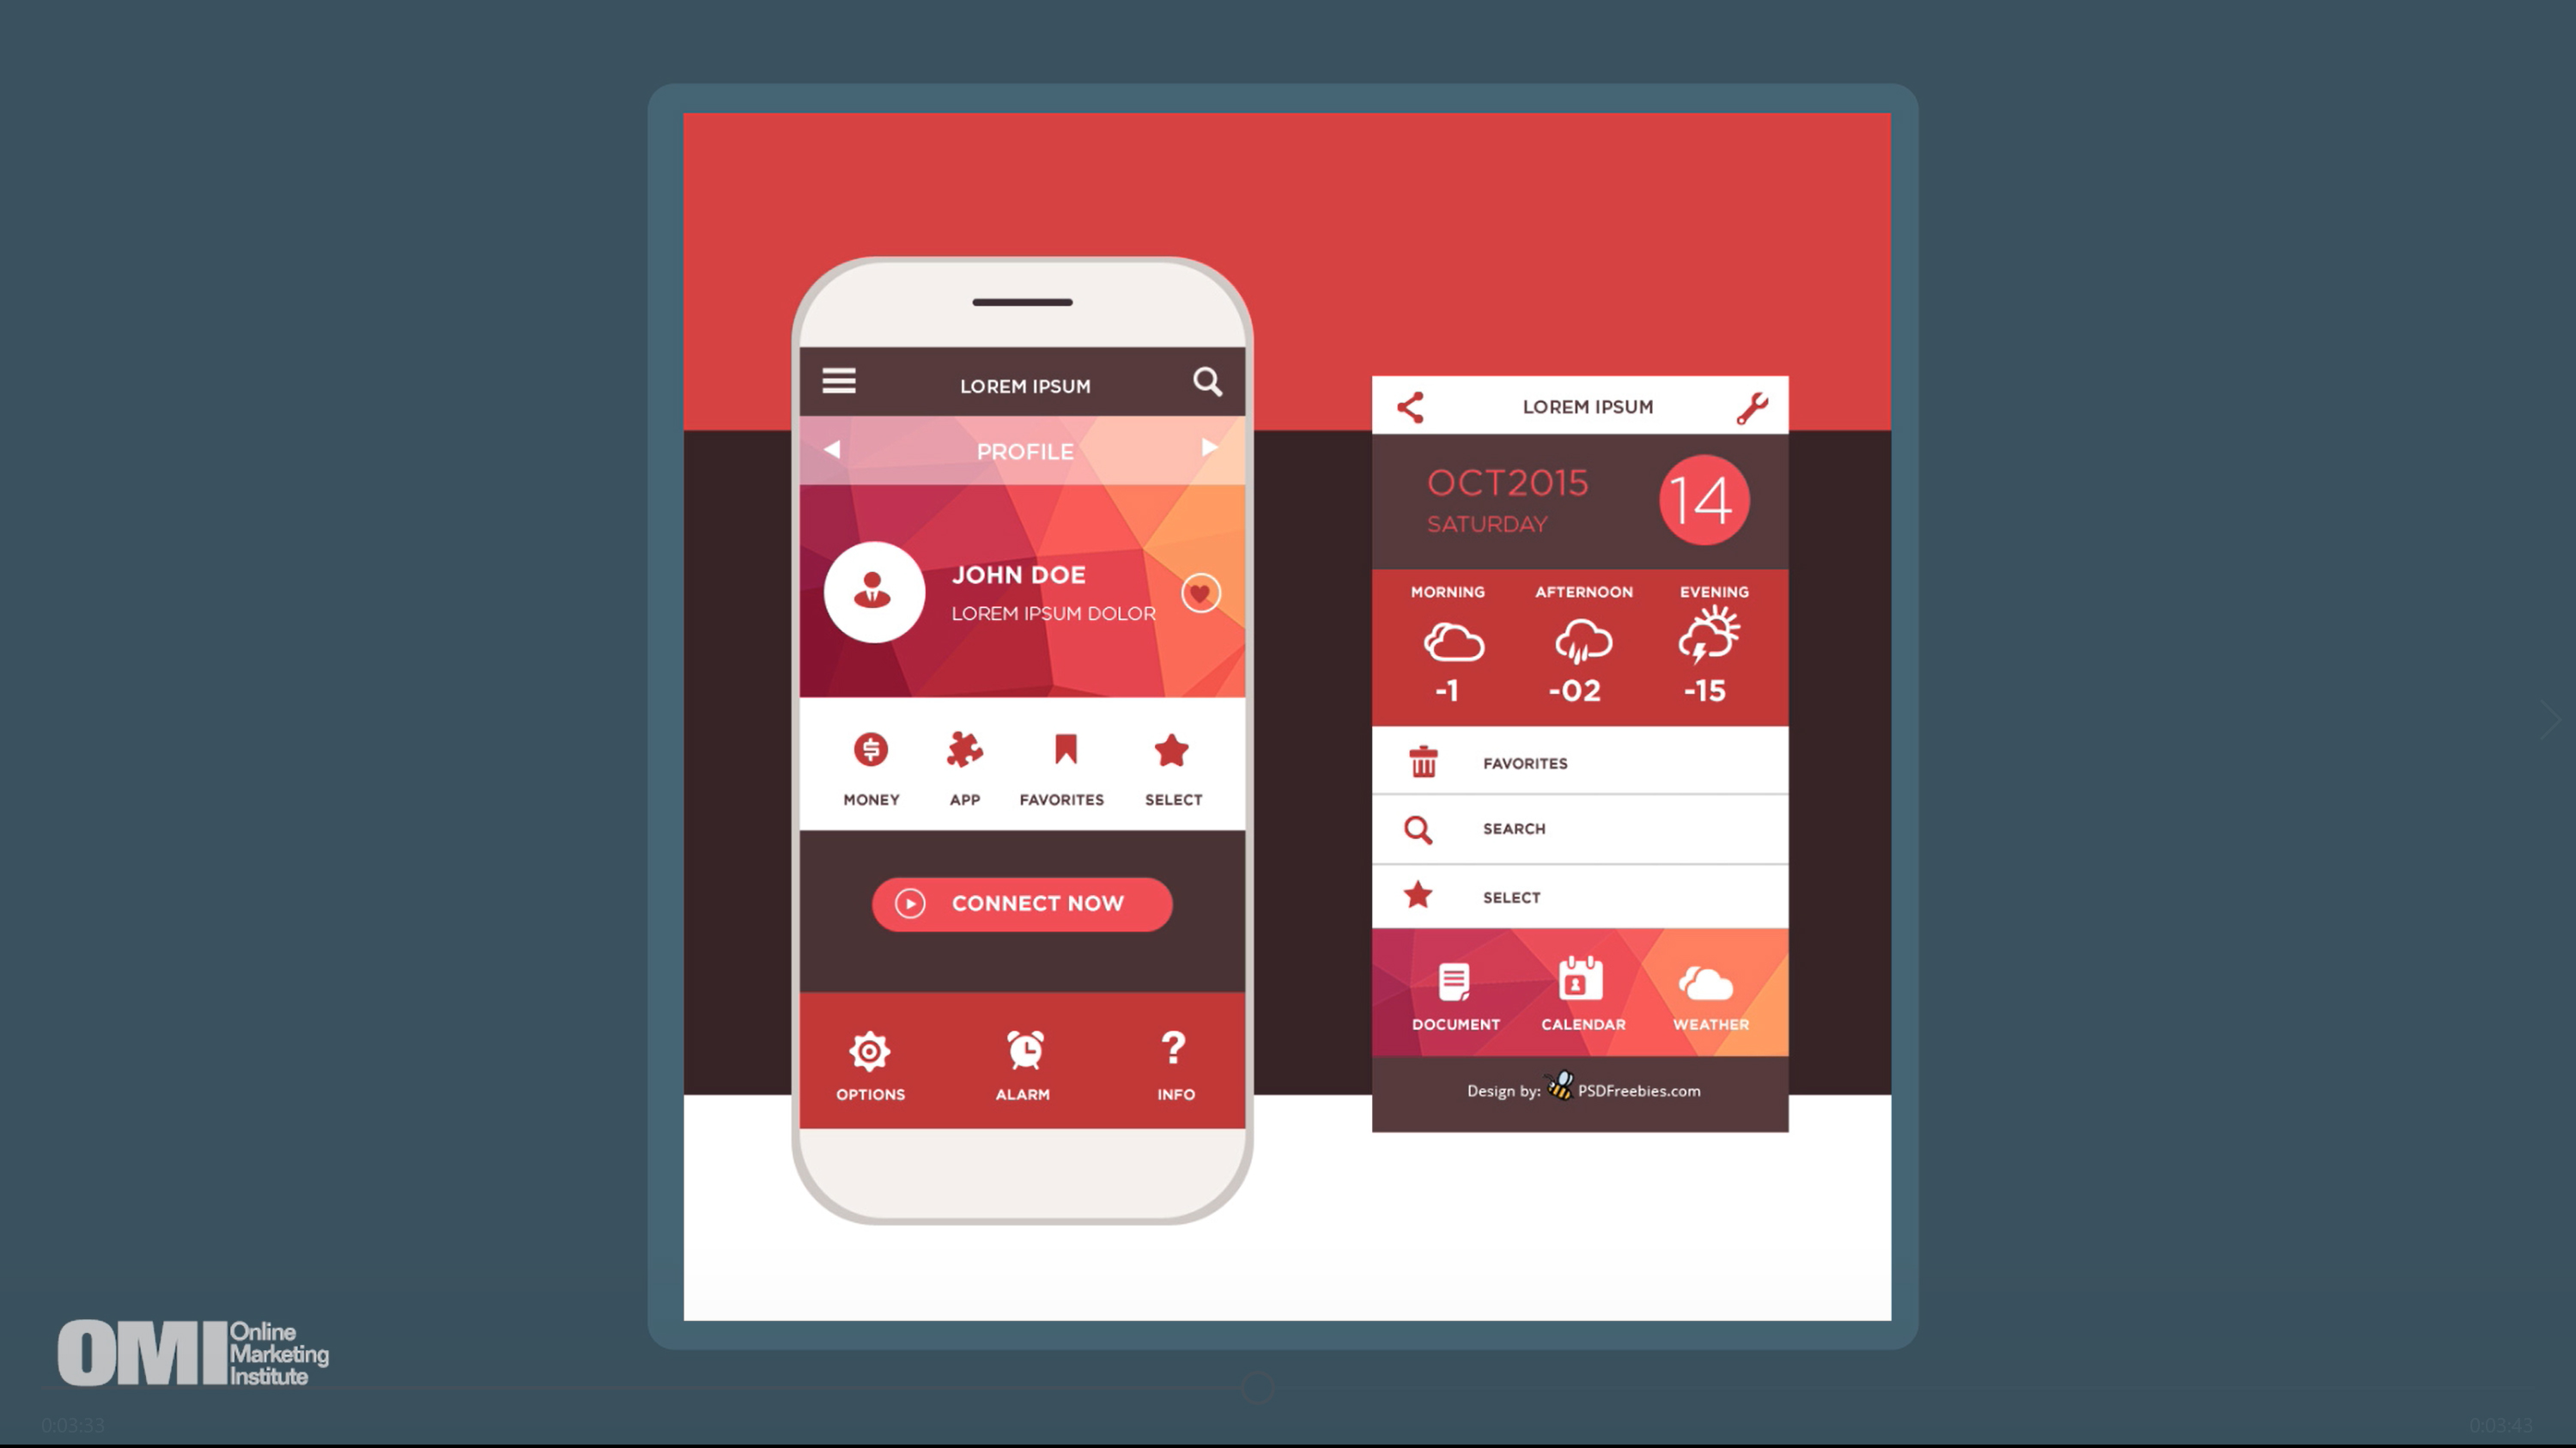 The UX in Mobile Marketing